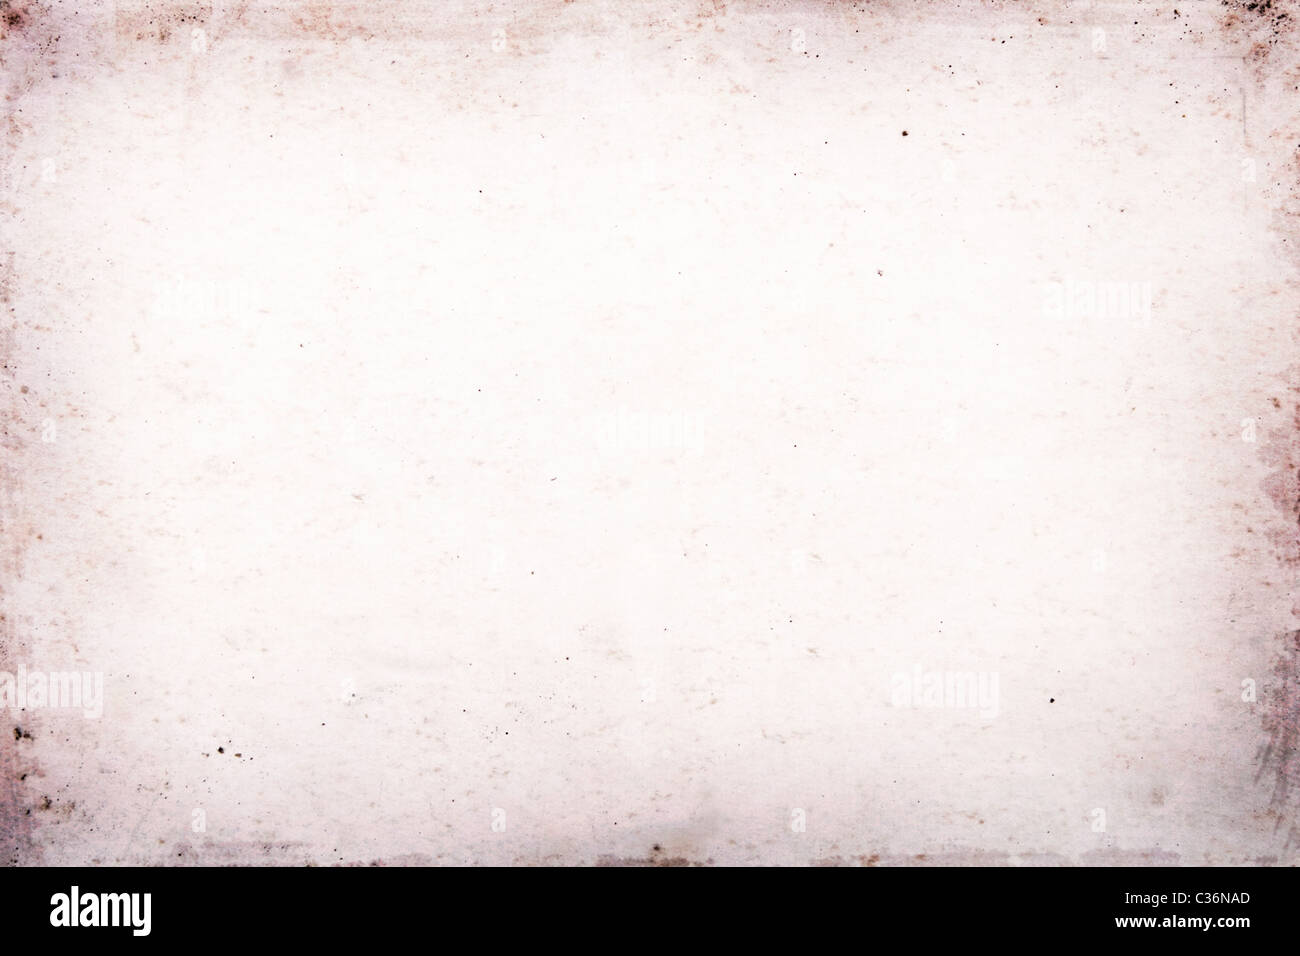 texture, grunge, ancient paper with age marks - Stock Image